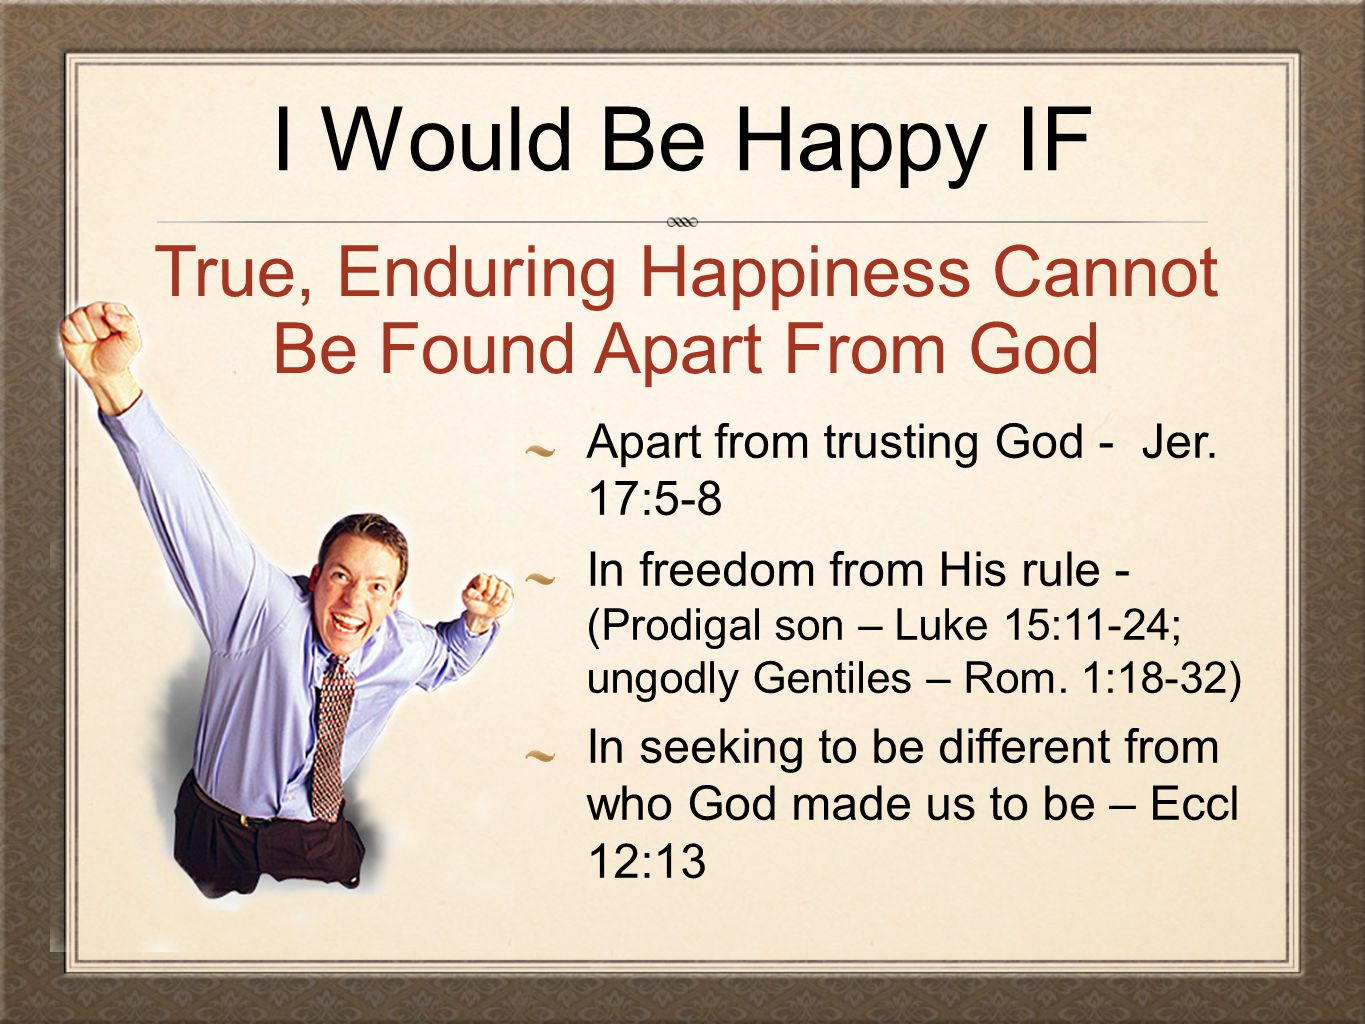 True, Enduring Happiness Cannot Be Found Apart From God